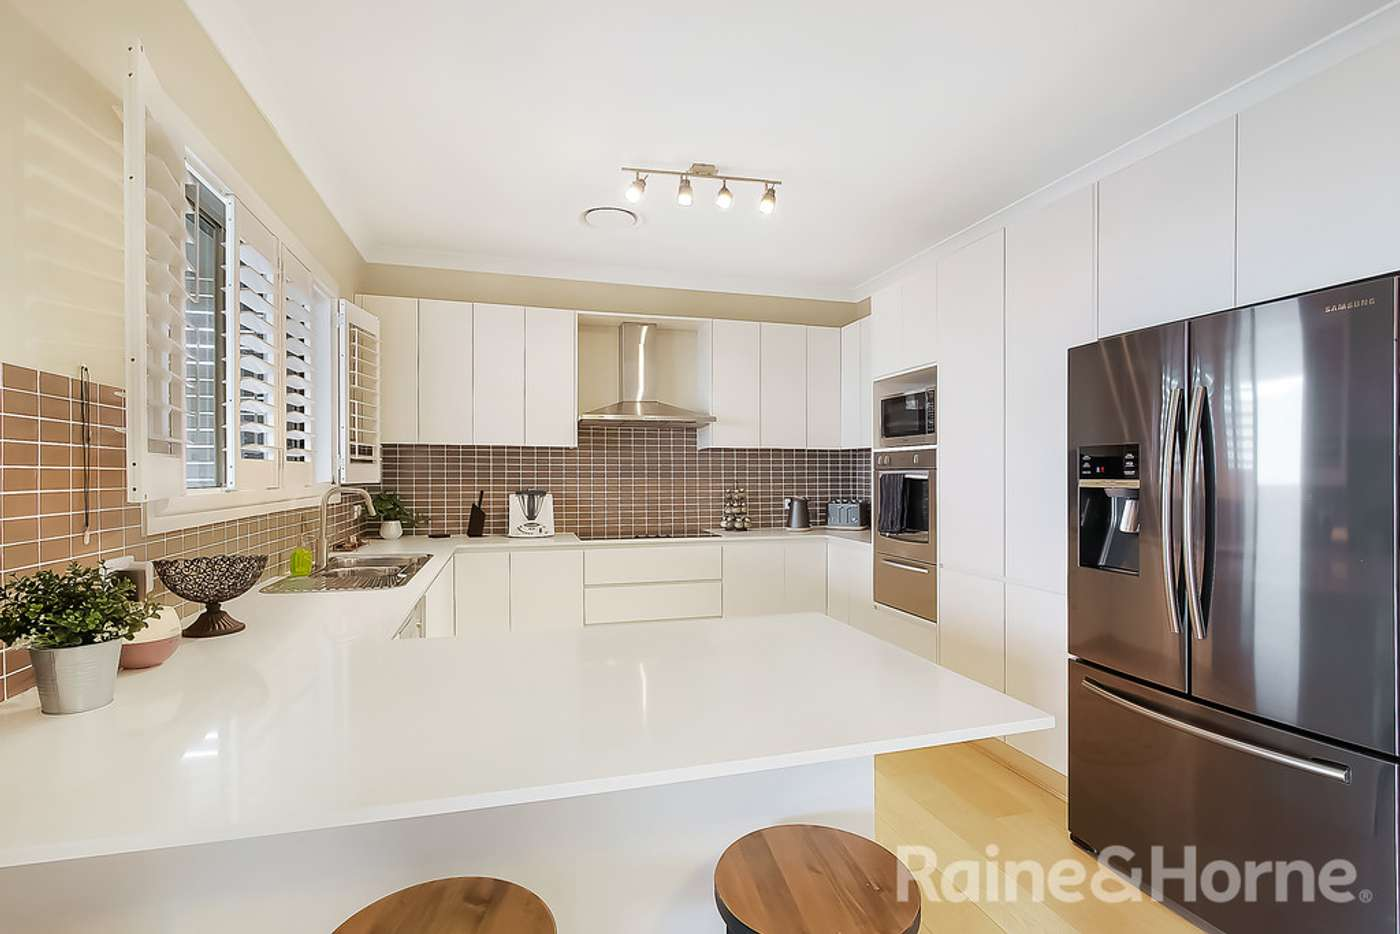 Sixth view of Homely house listing, 3 Silo Place, Mcgraths Hill NSW 2756